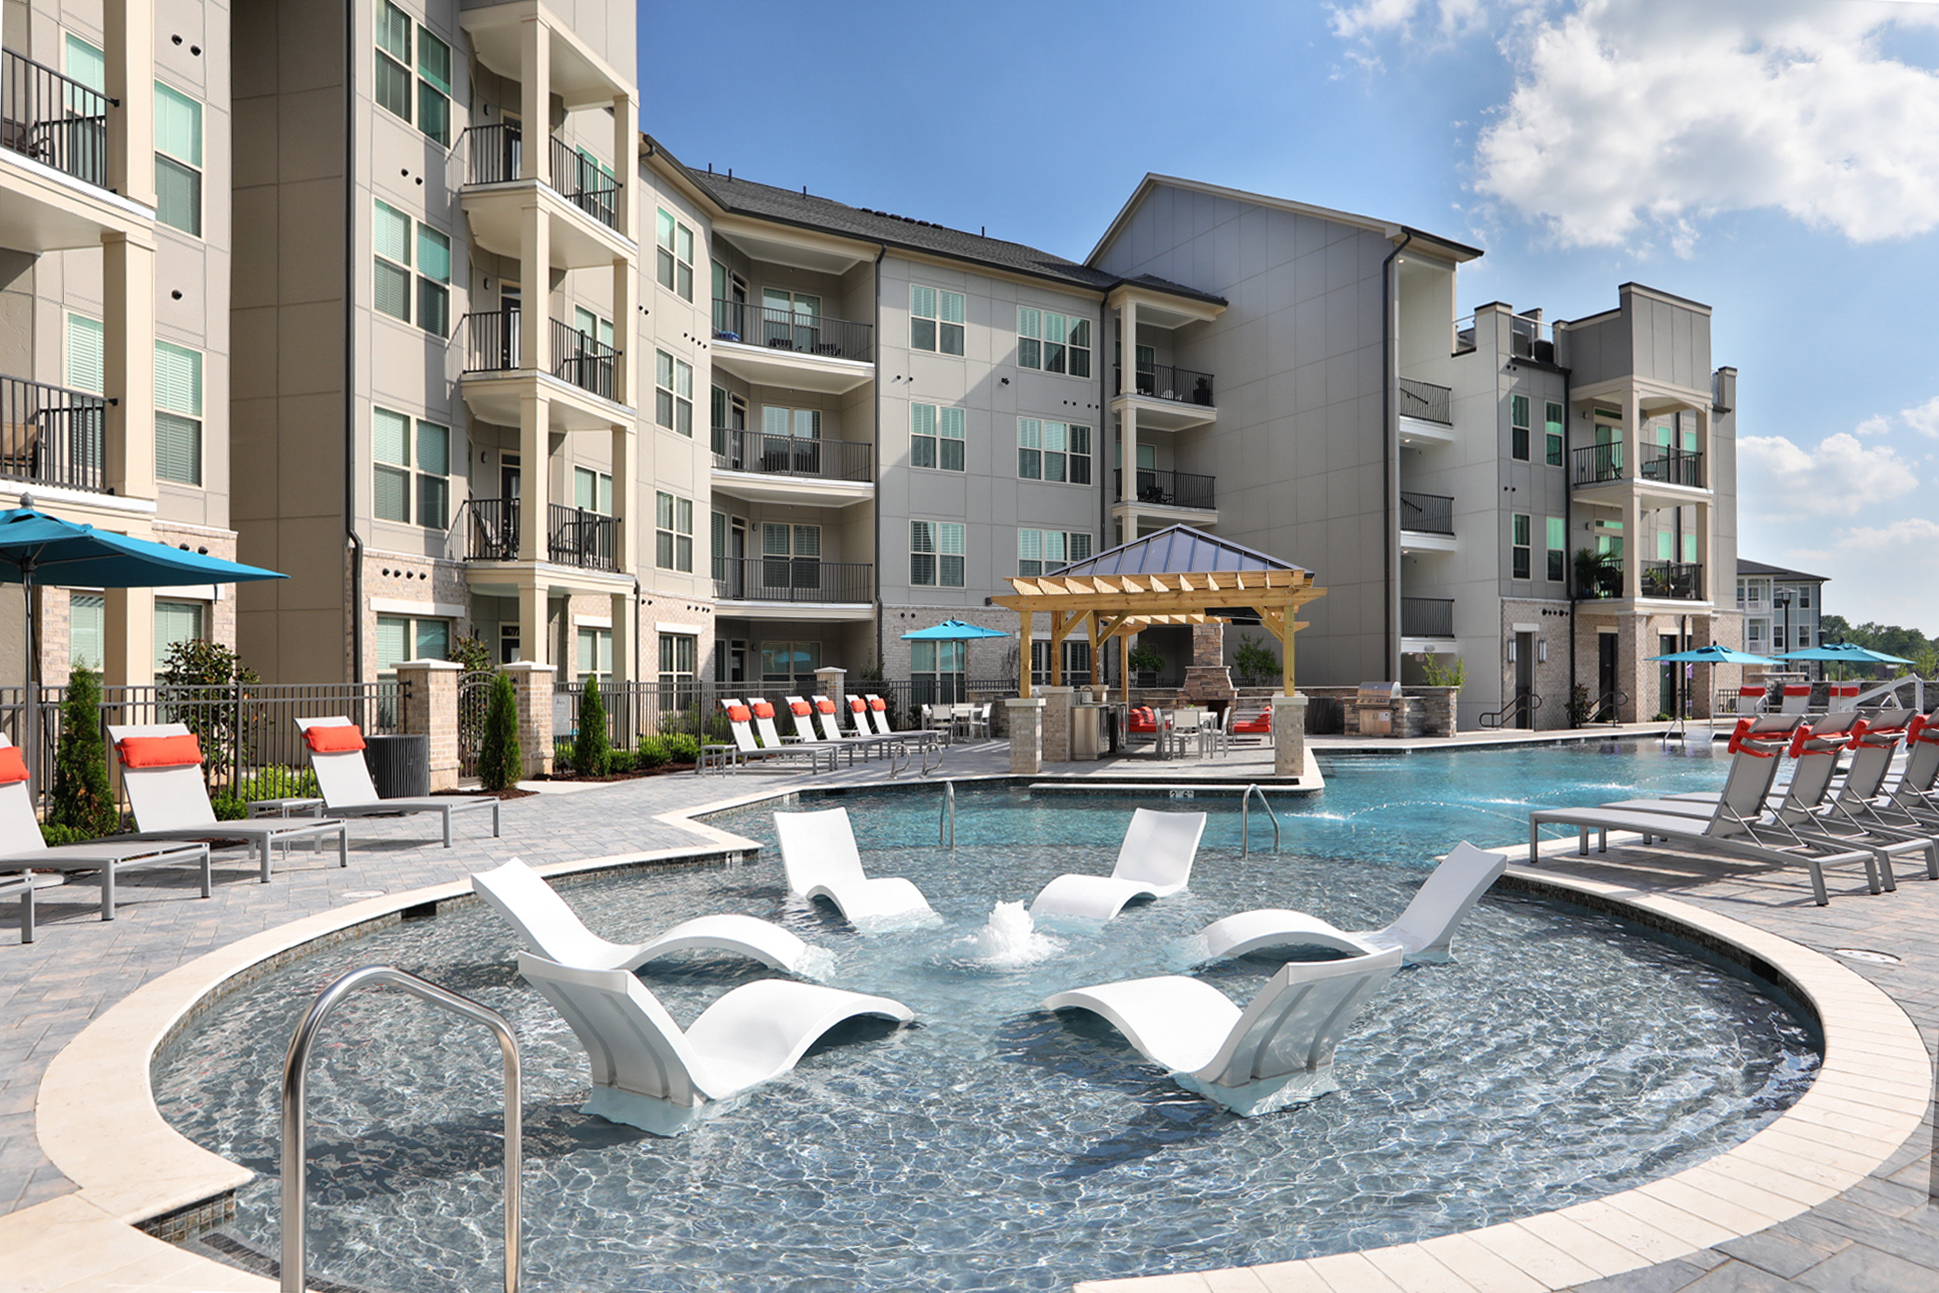 pool loungers at richmond apartments